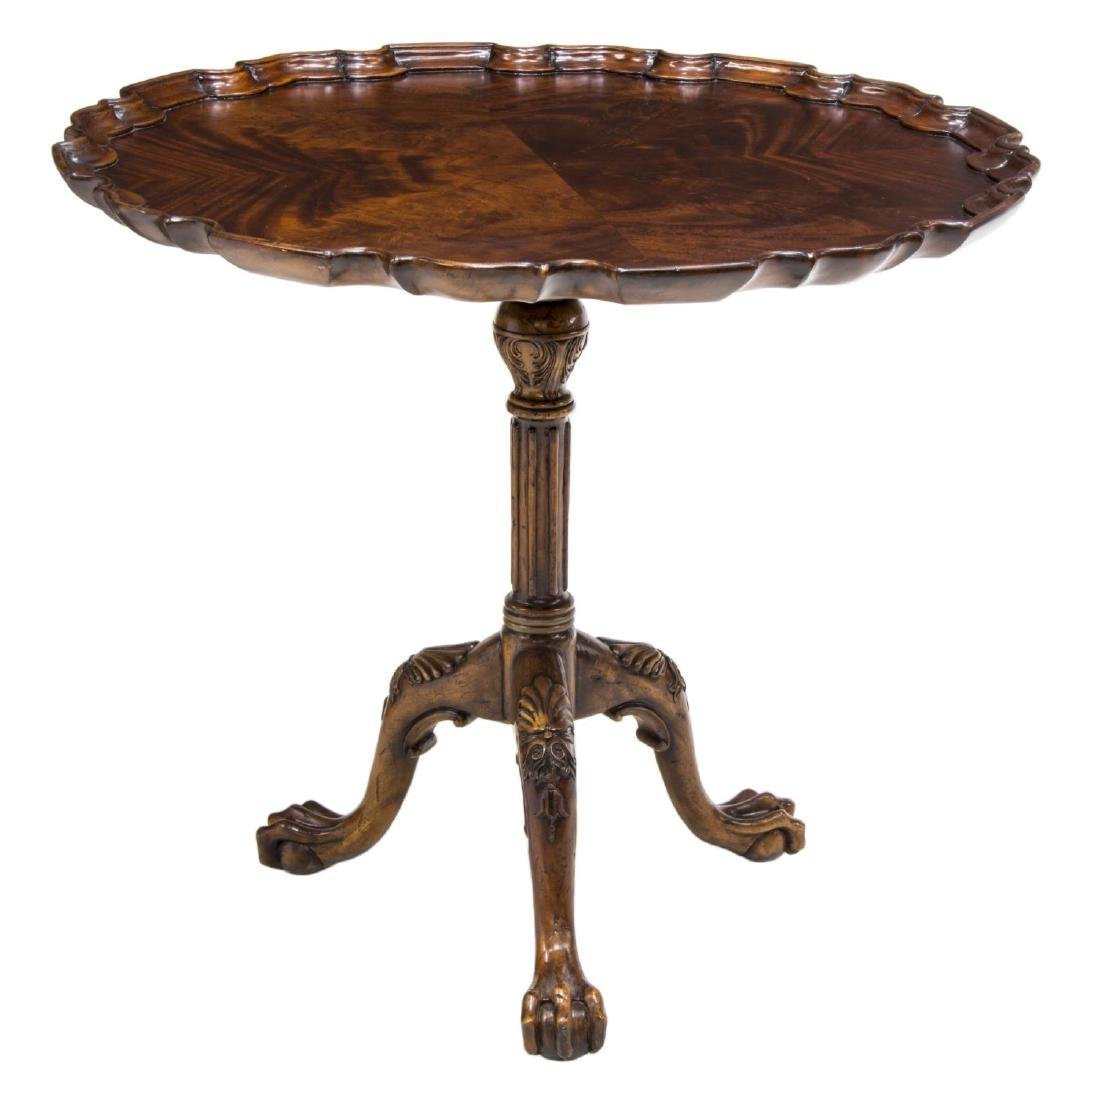 CHIPPENDALE STYLE MAHOGANY SIDE TABLE